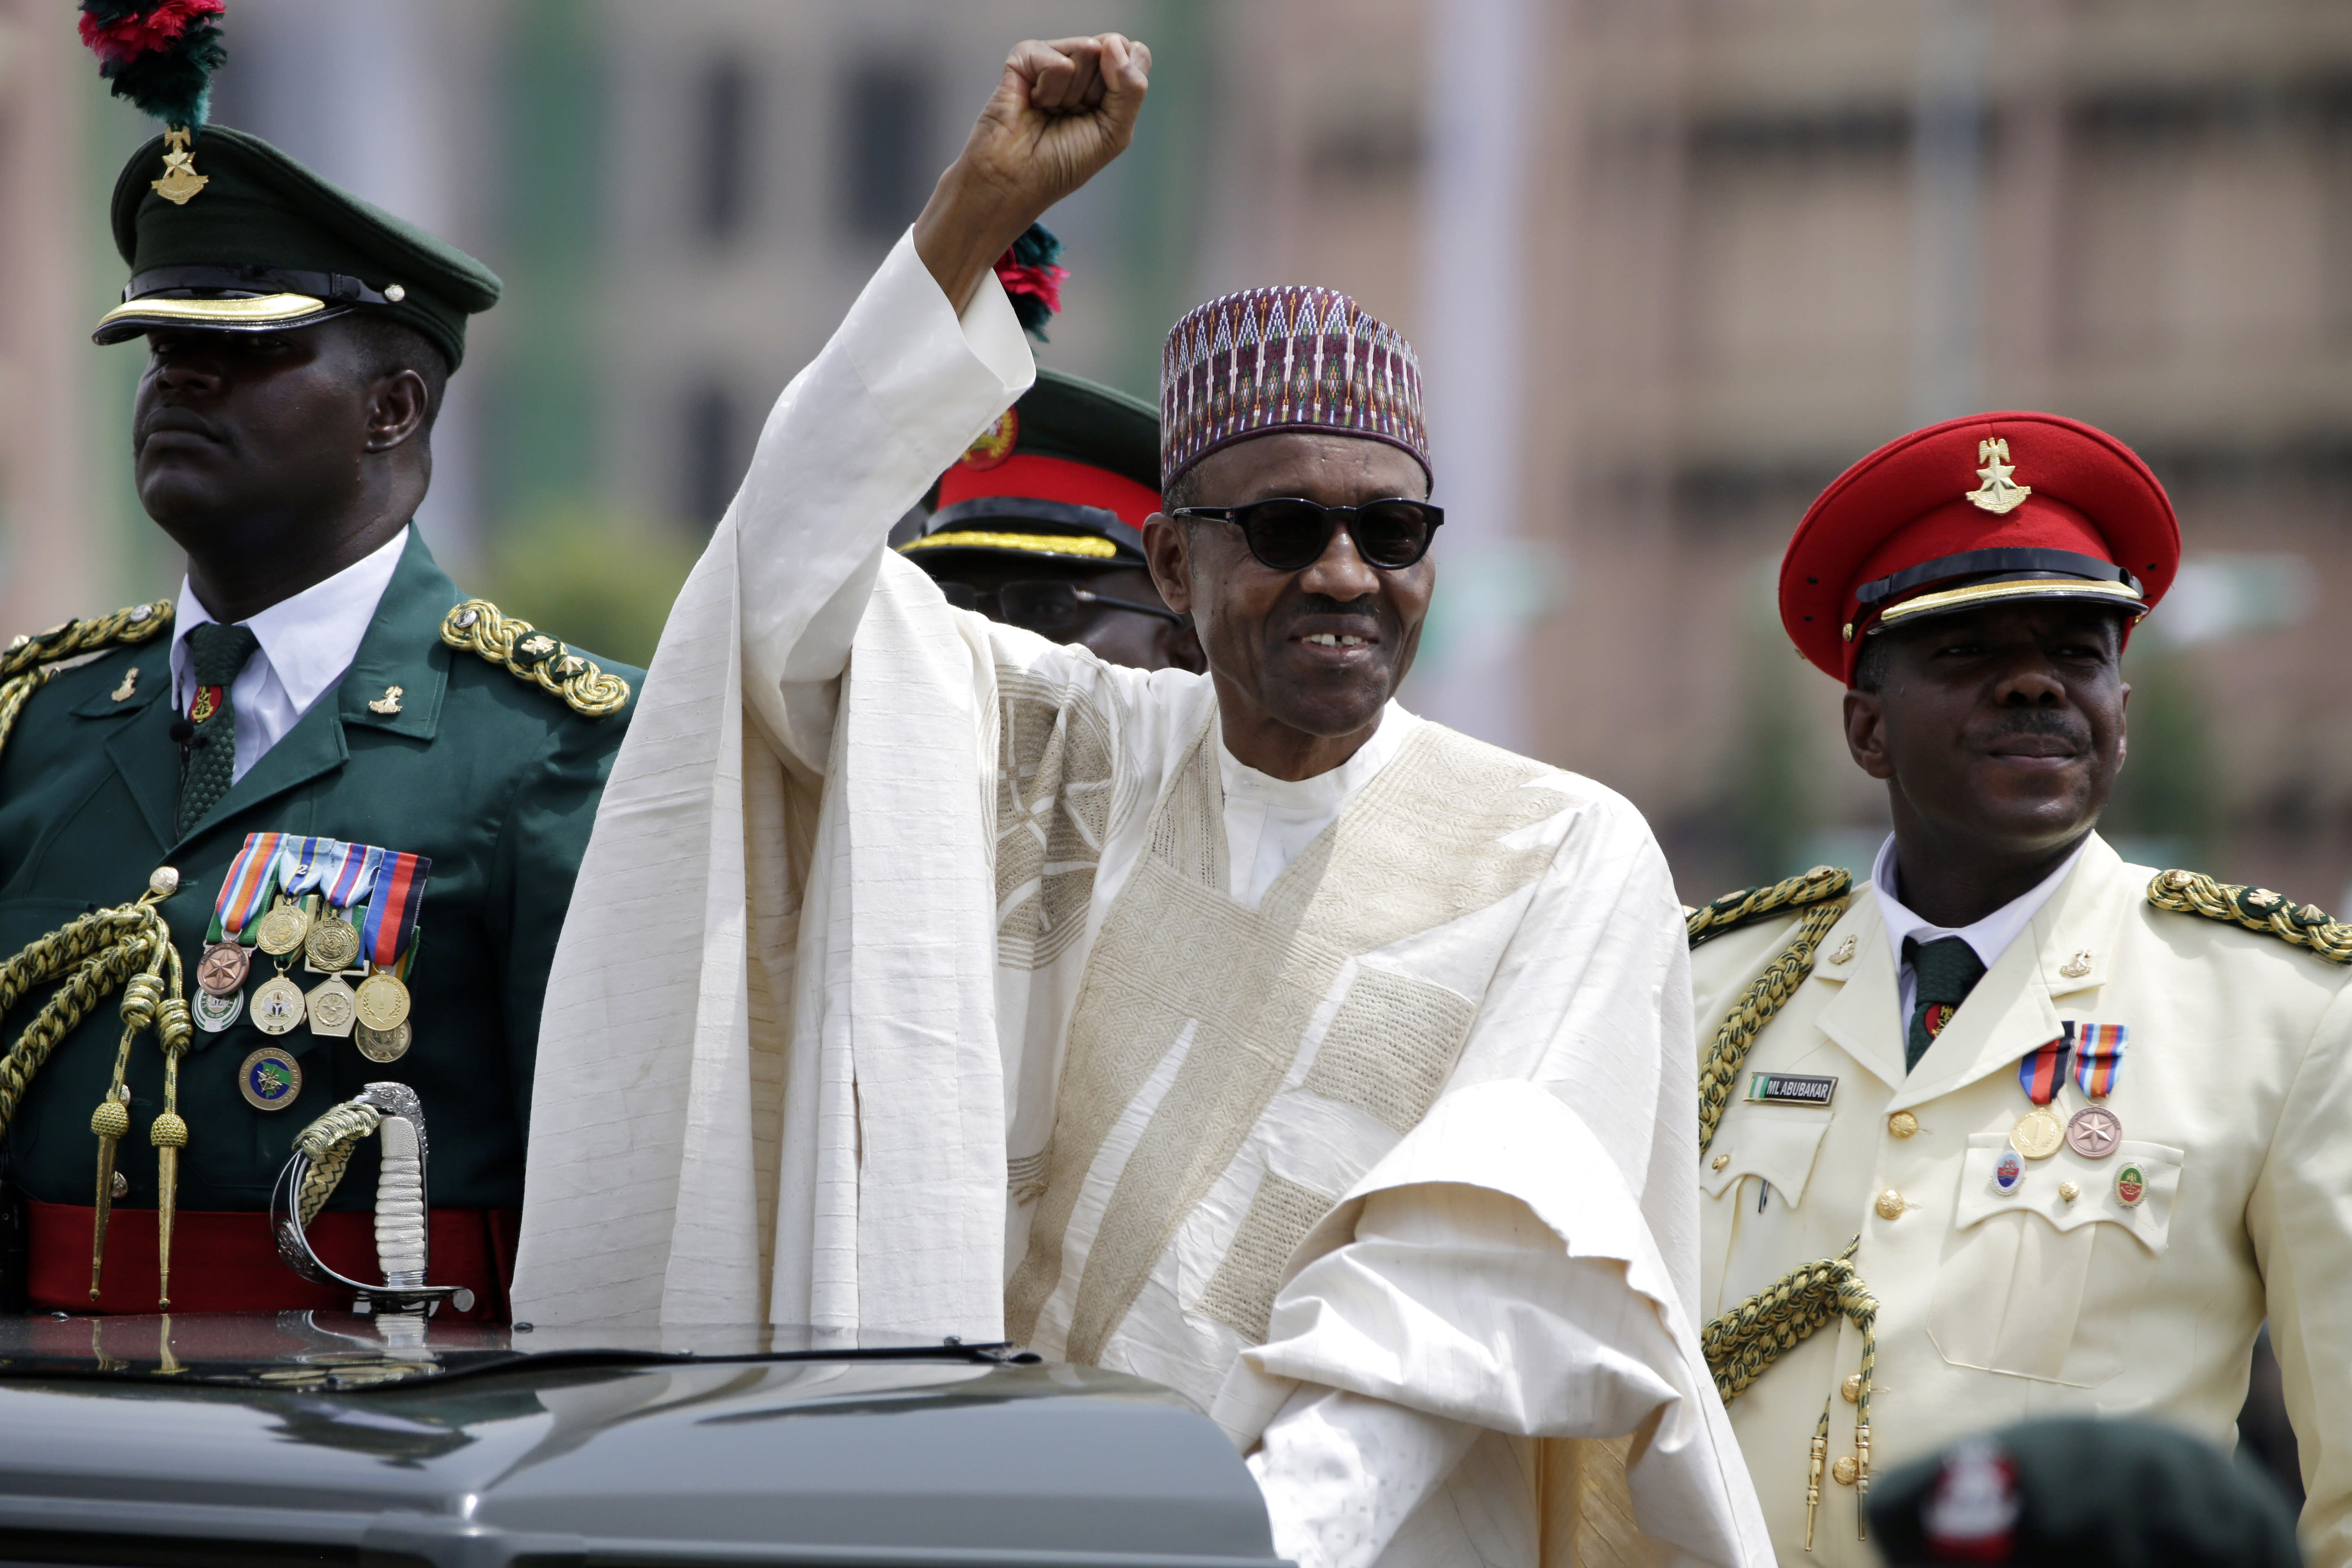 Nigerian president declares wealth, showing 'austere' living